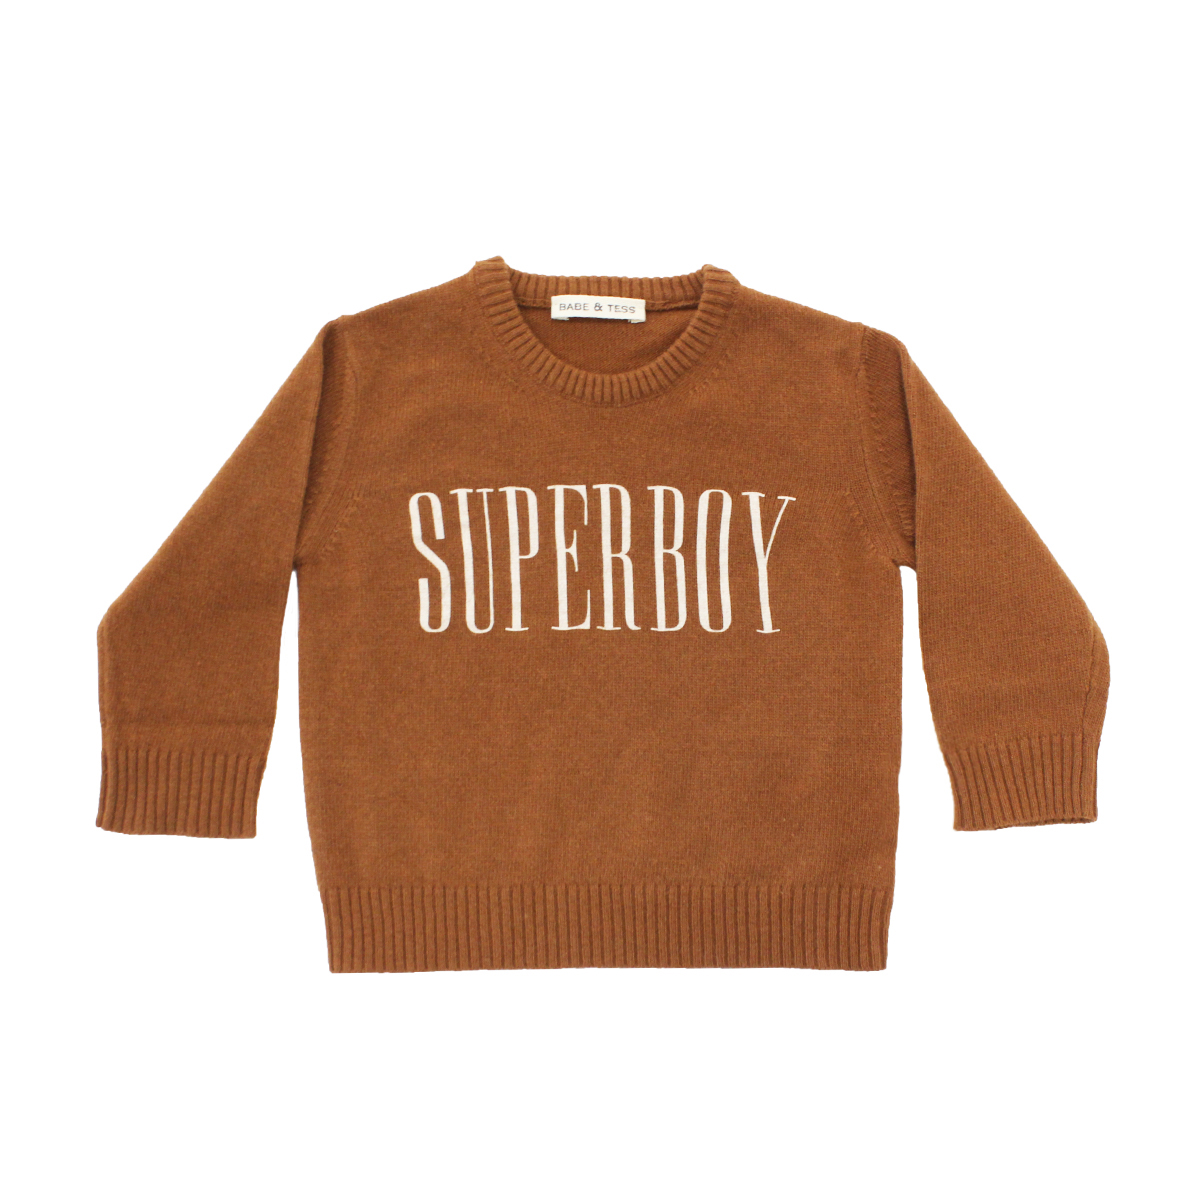 Babe & Tess Sweater in Rust with Superboy print